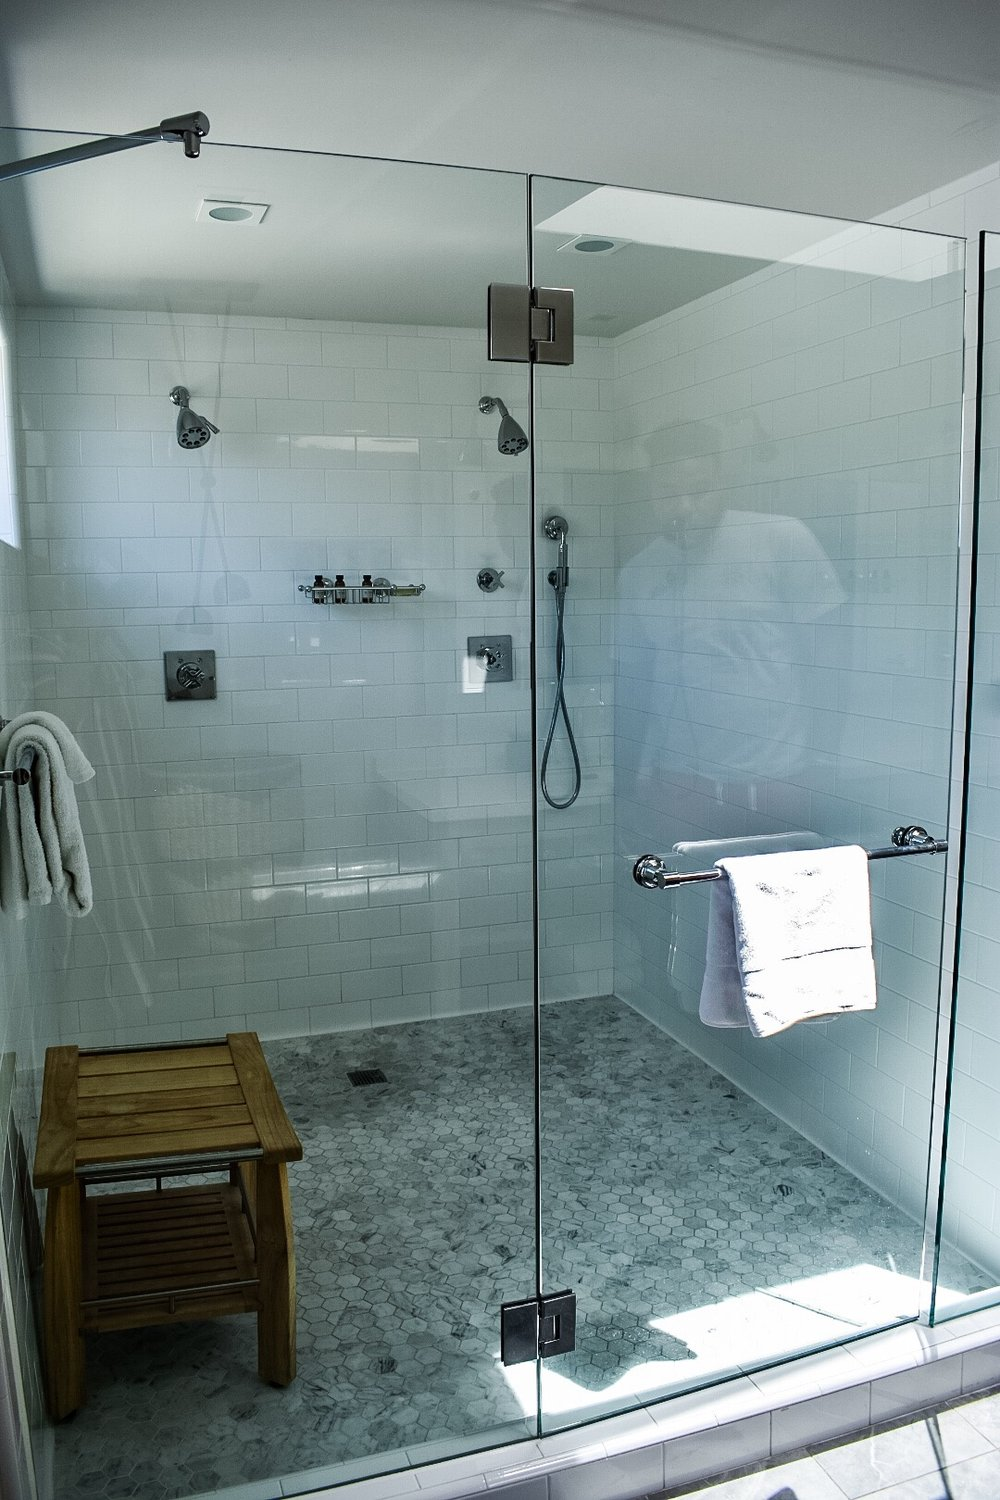 This photo doesn't do the shower justice